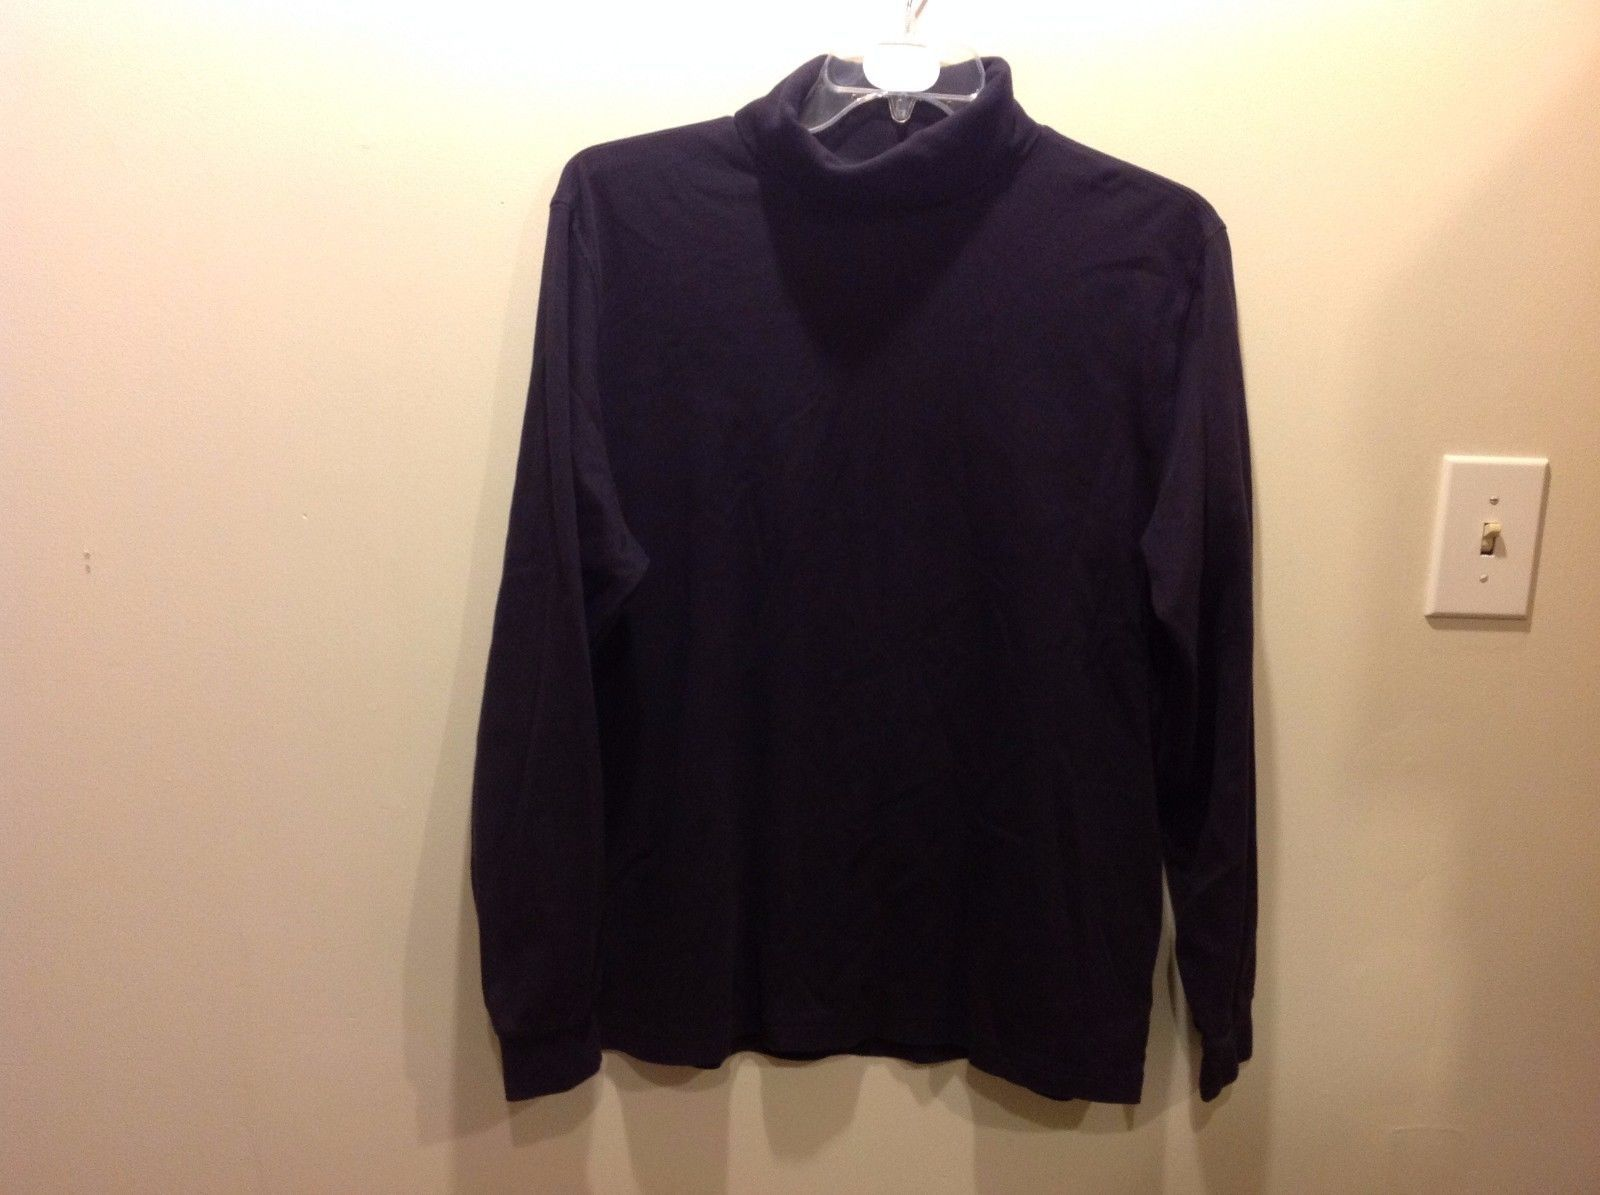 Lands End Navy Blue Turtleneck Sweater Sz XL 46-48